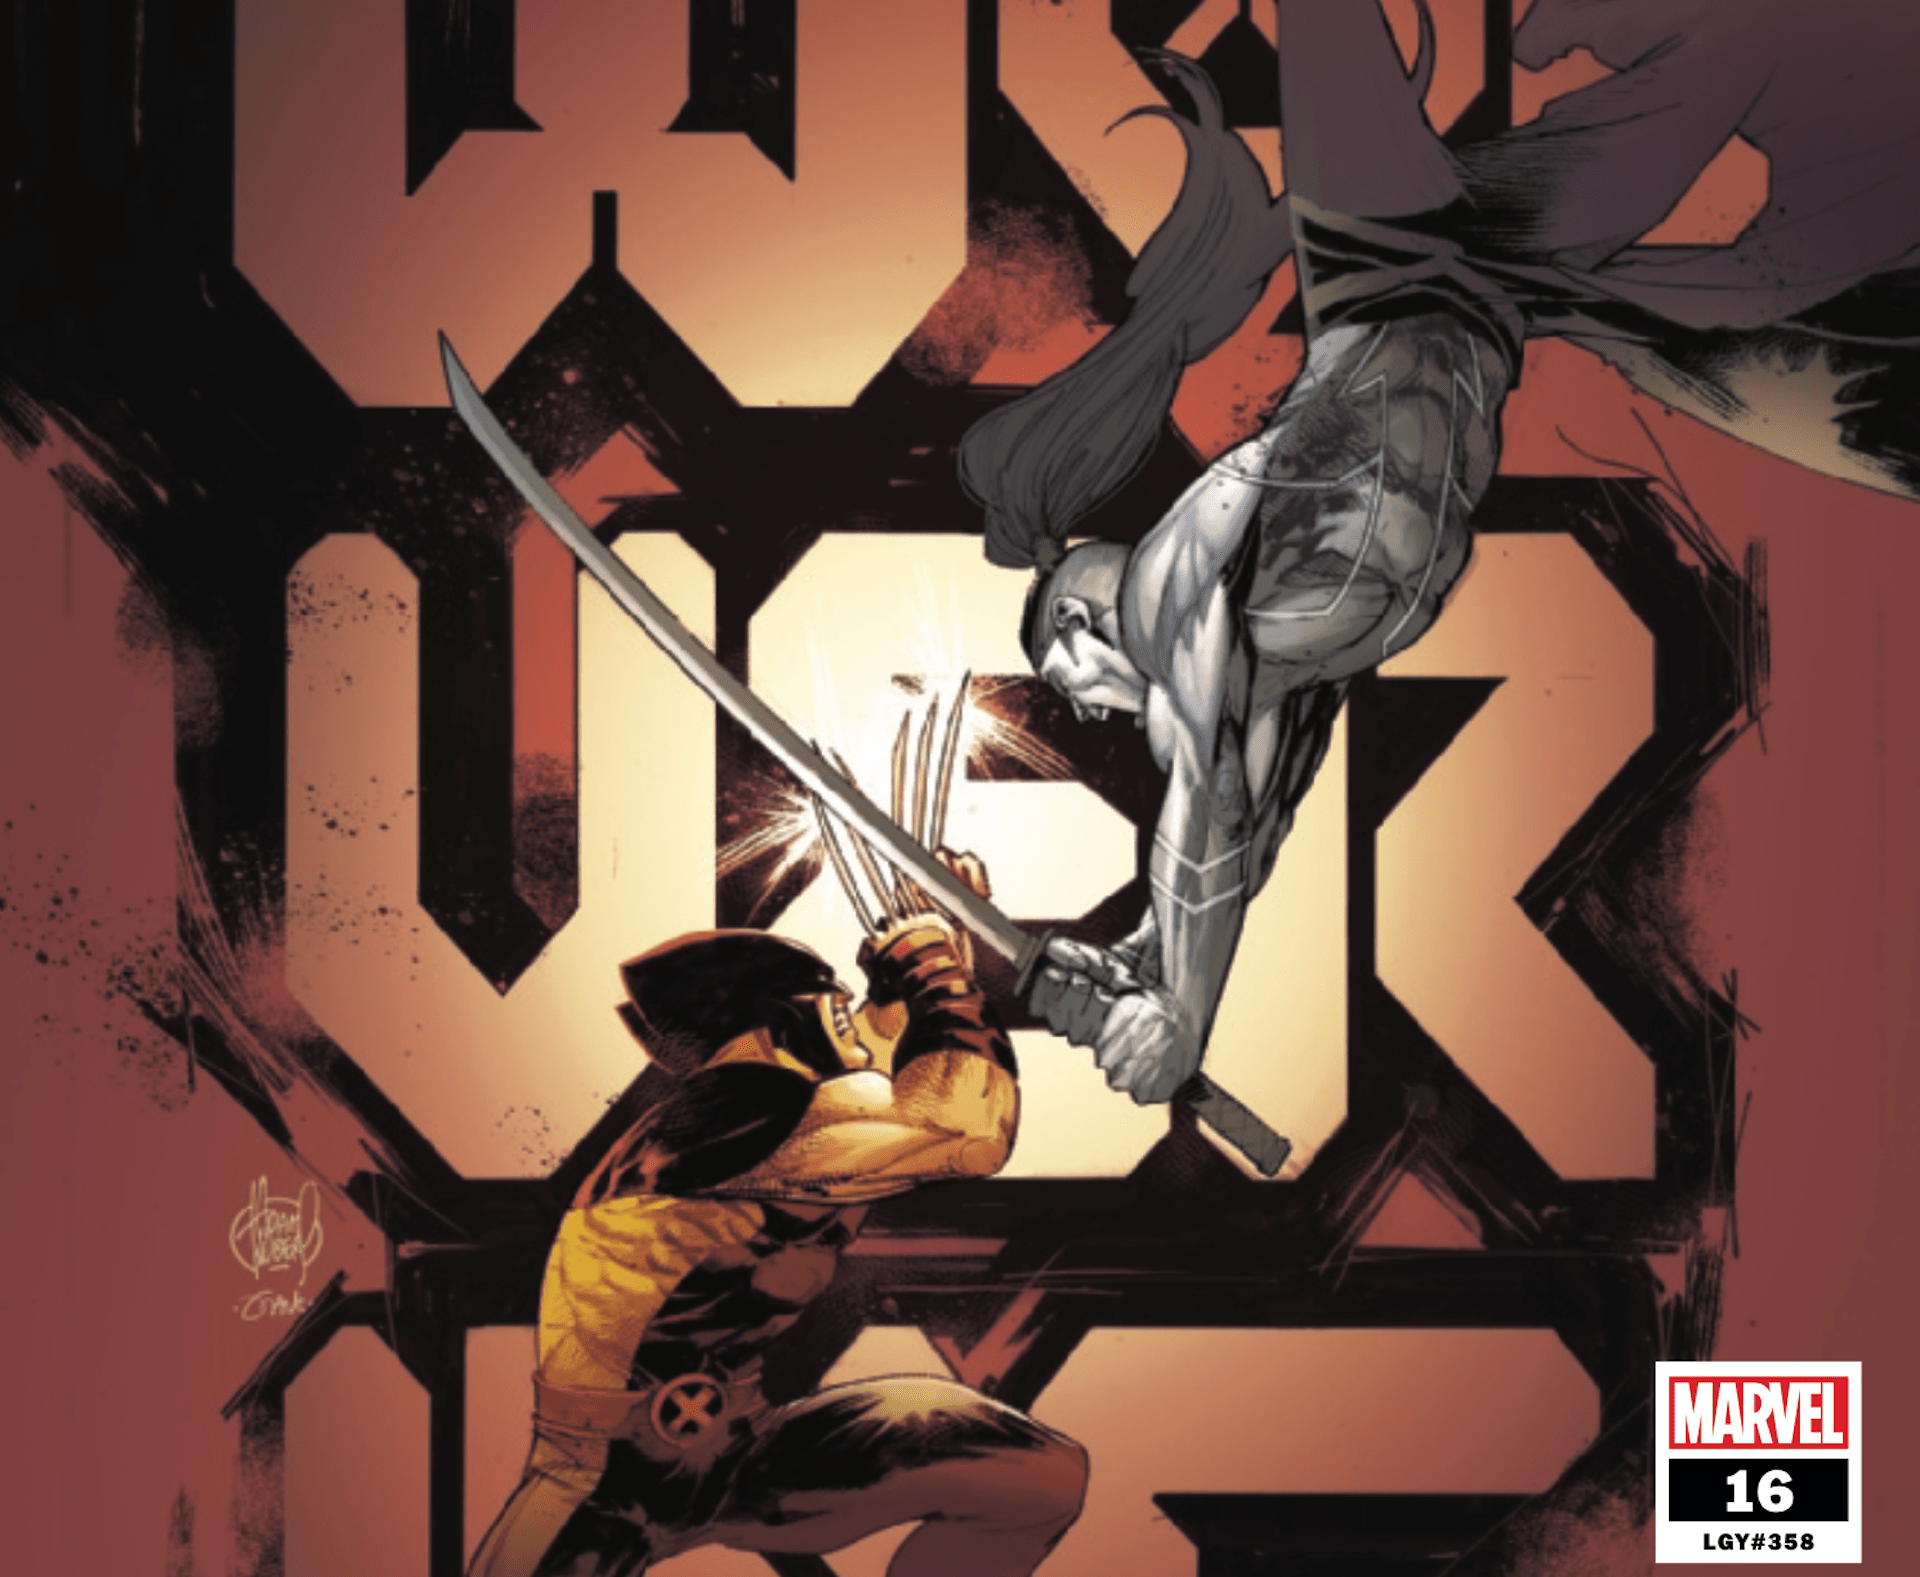 'Wolverine' #16 may be the best Solem issue yet